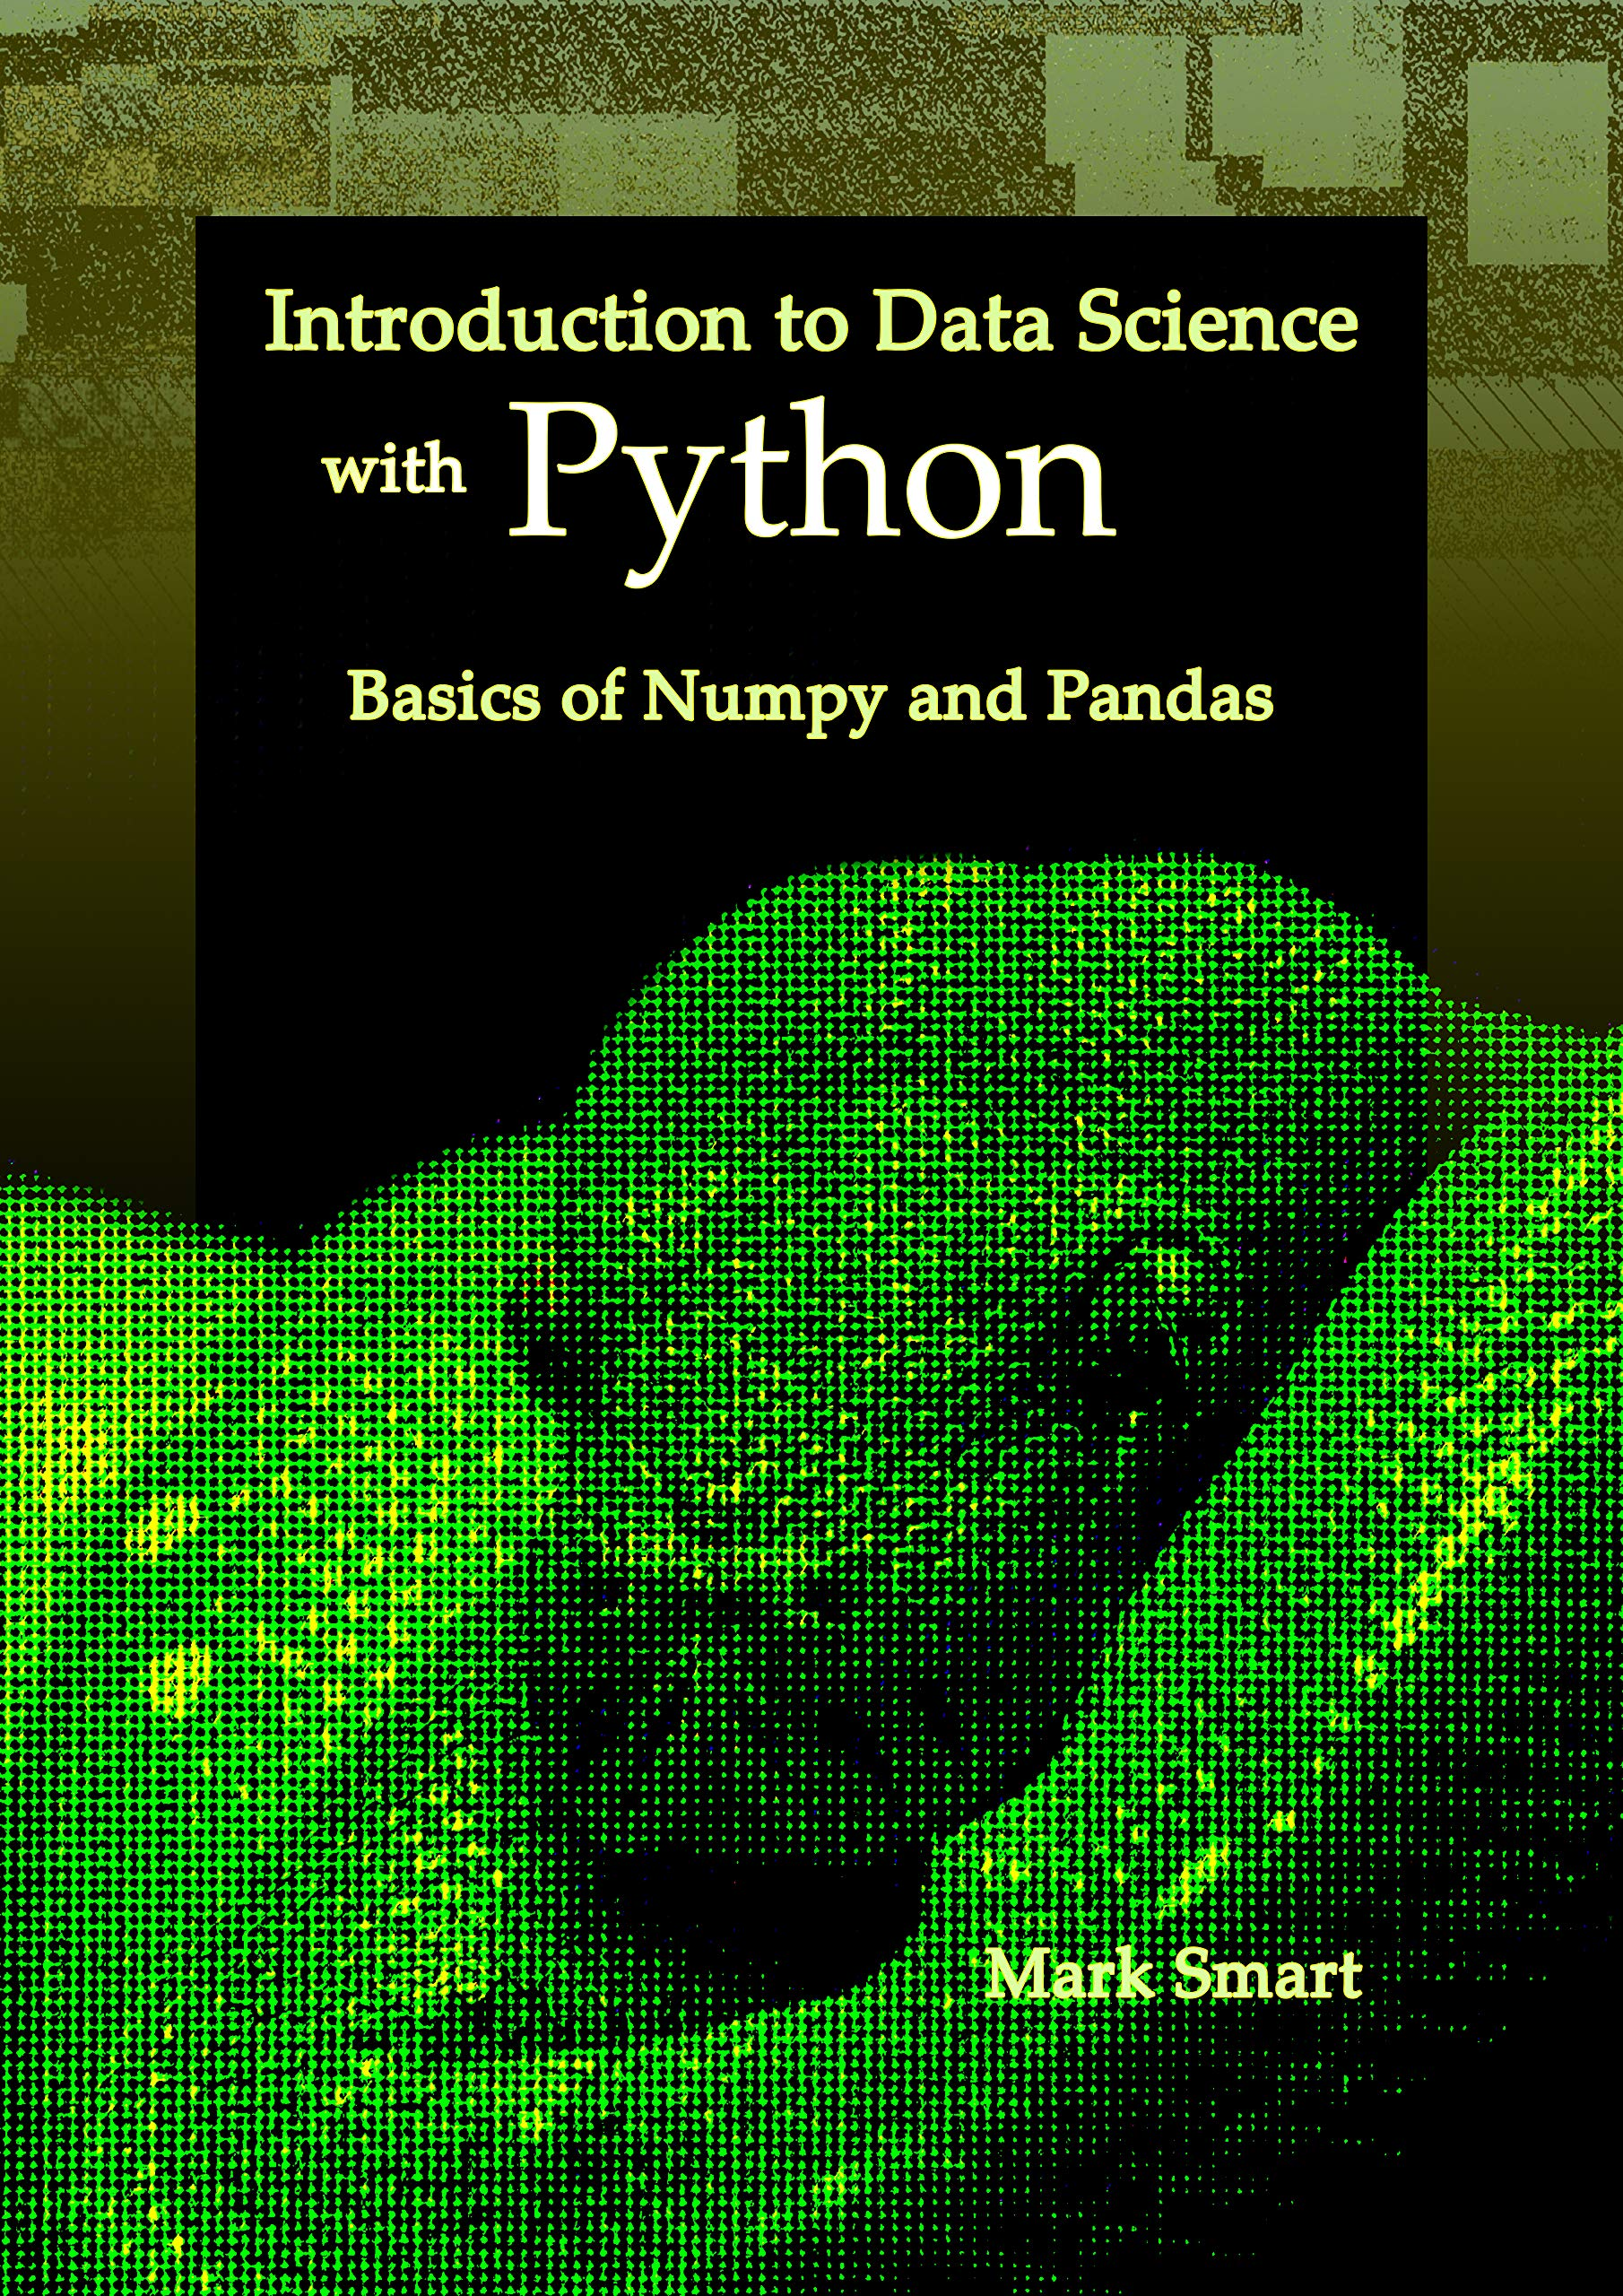 Introduction to Data Science with Python: Basics of Numpy and Pandas  (English Edition) - Giochi Legno